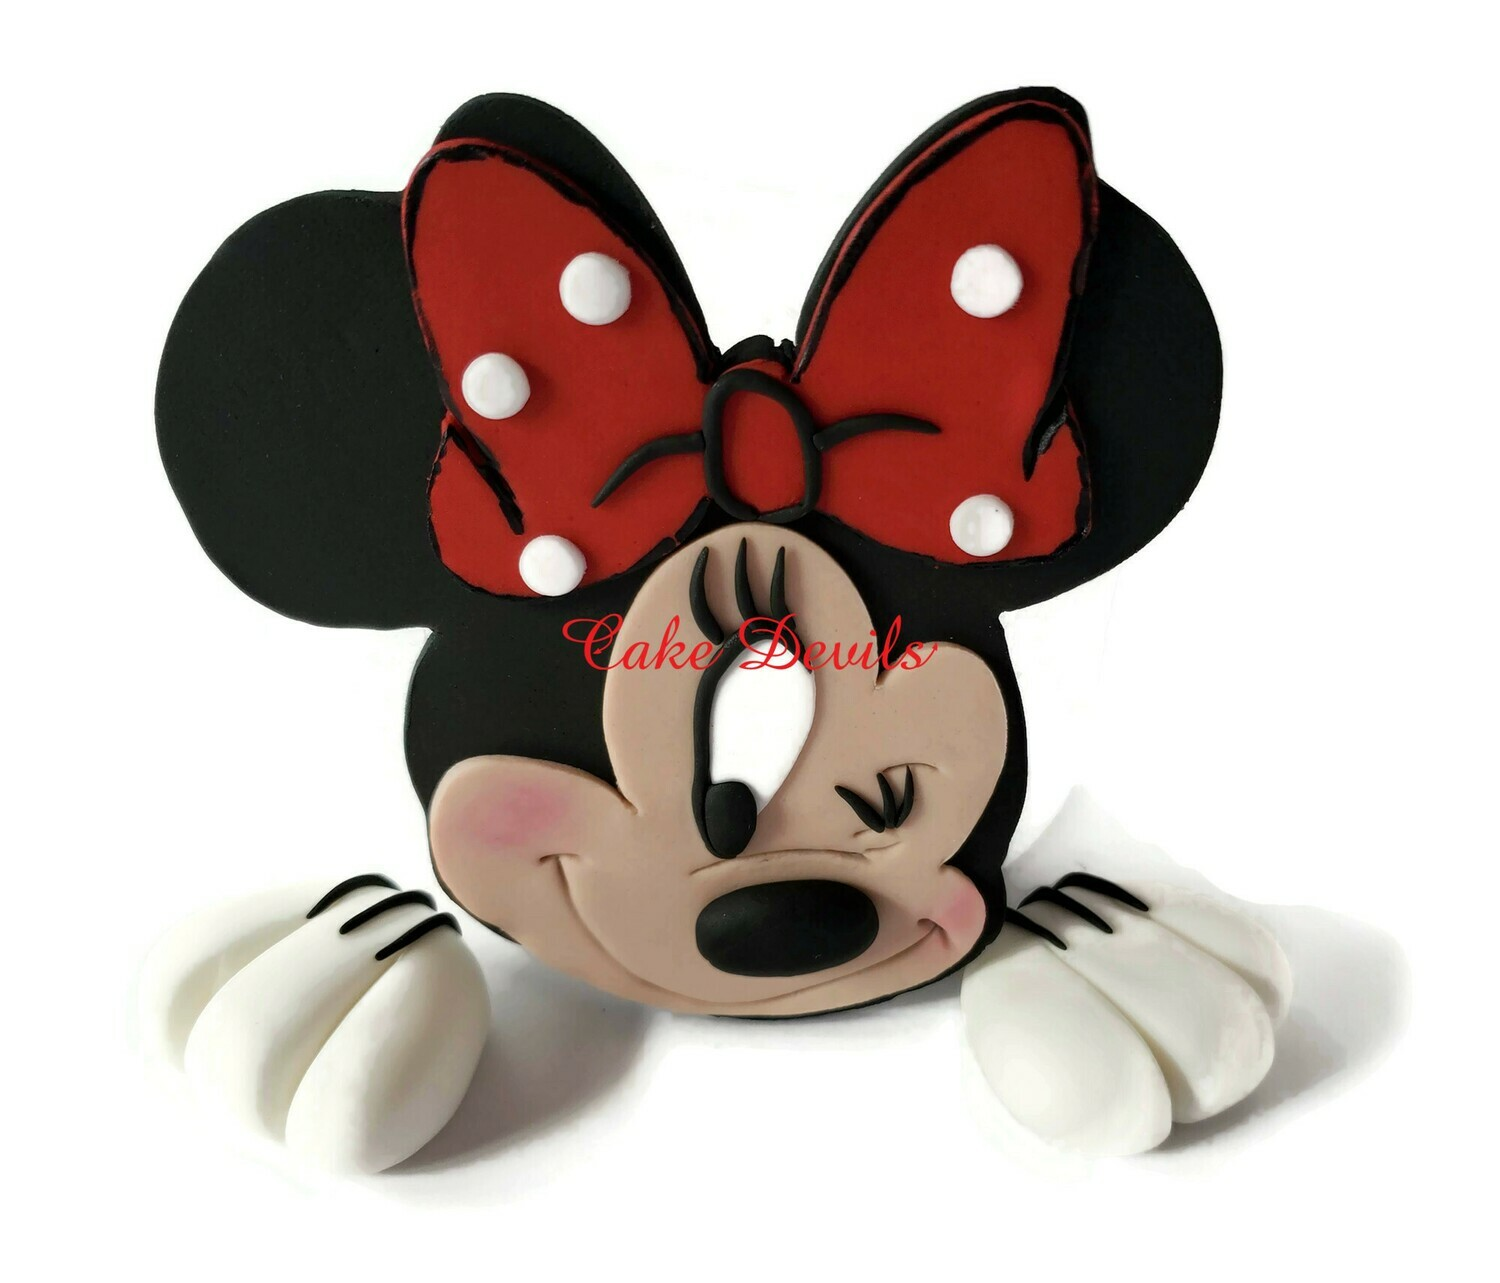 Minnie Mouse winking face and hands Fondant Cake Toppers